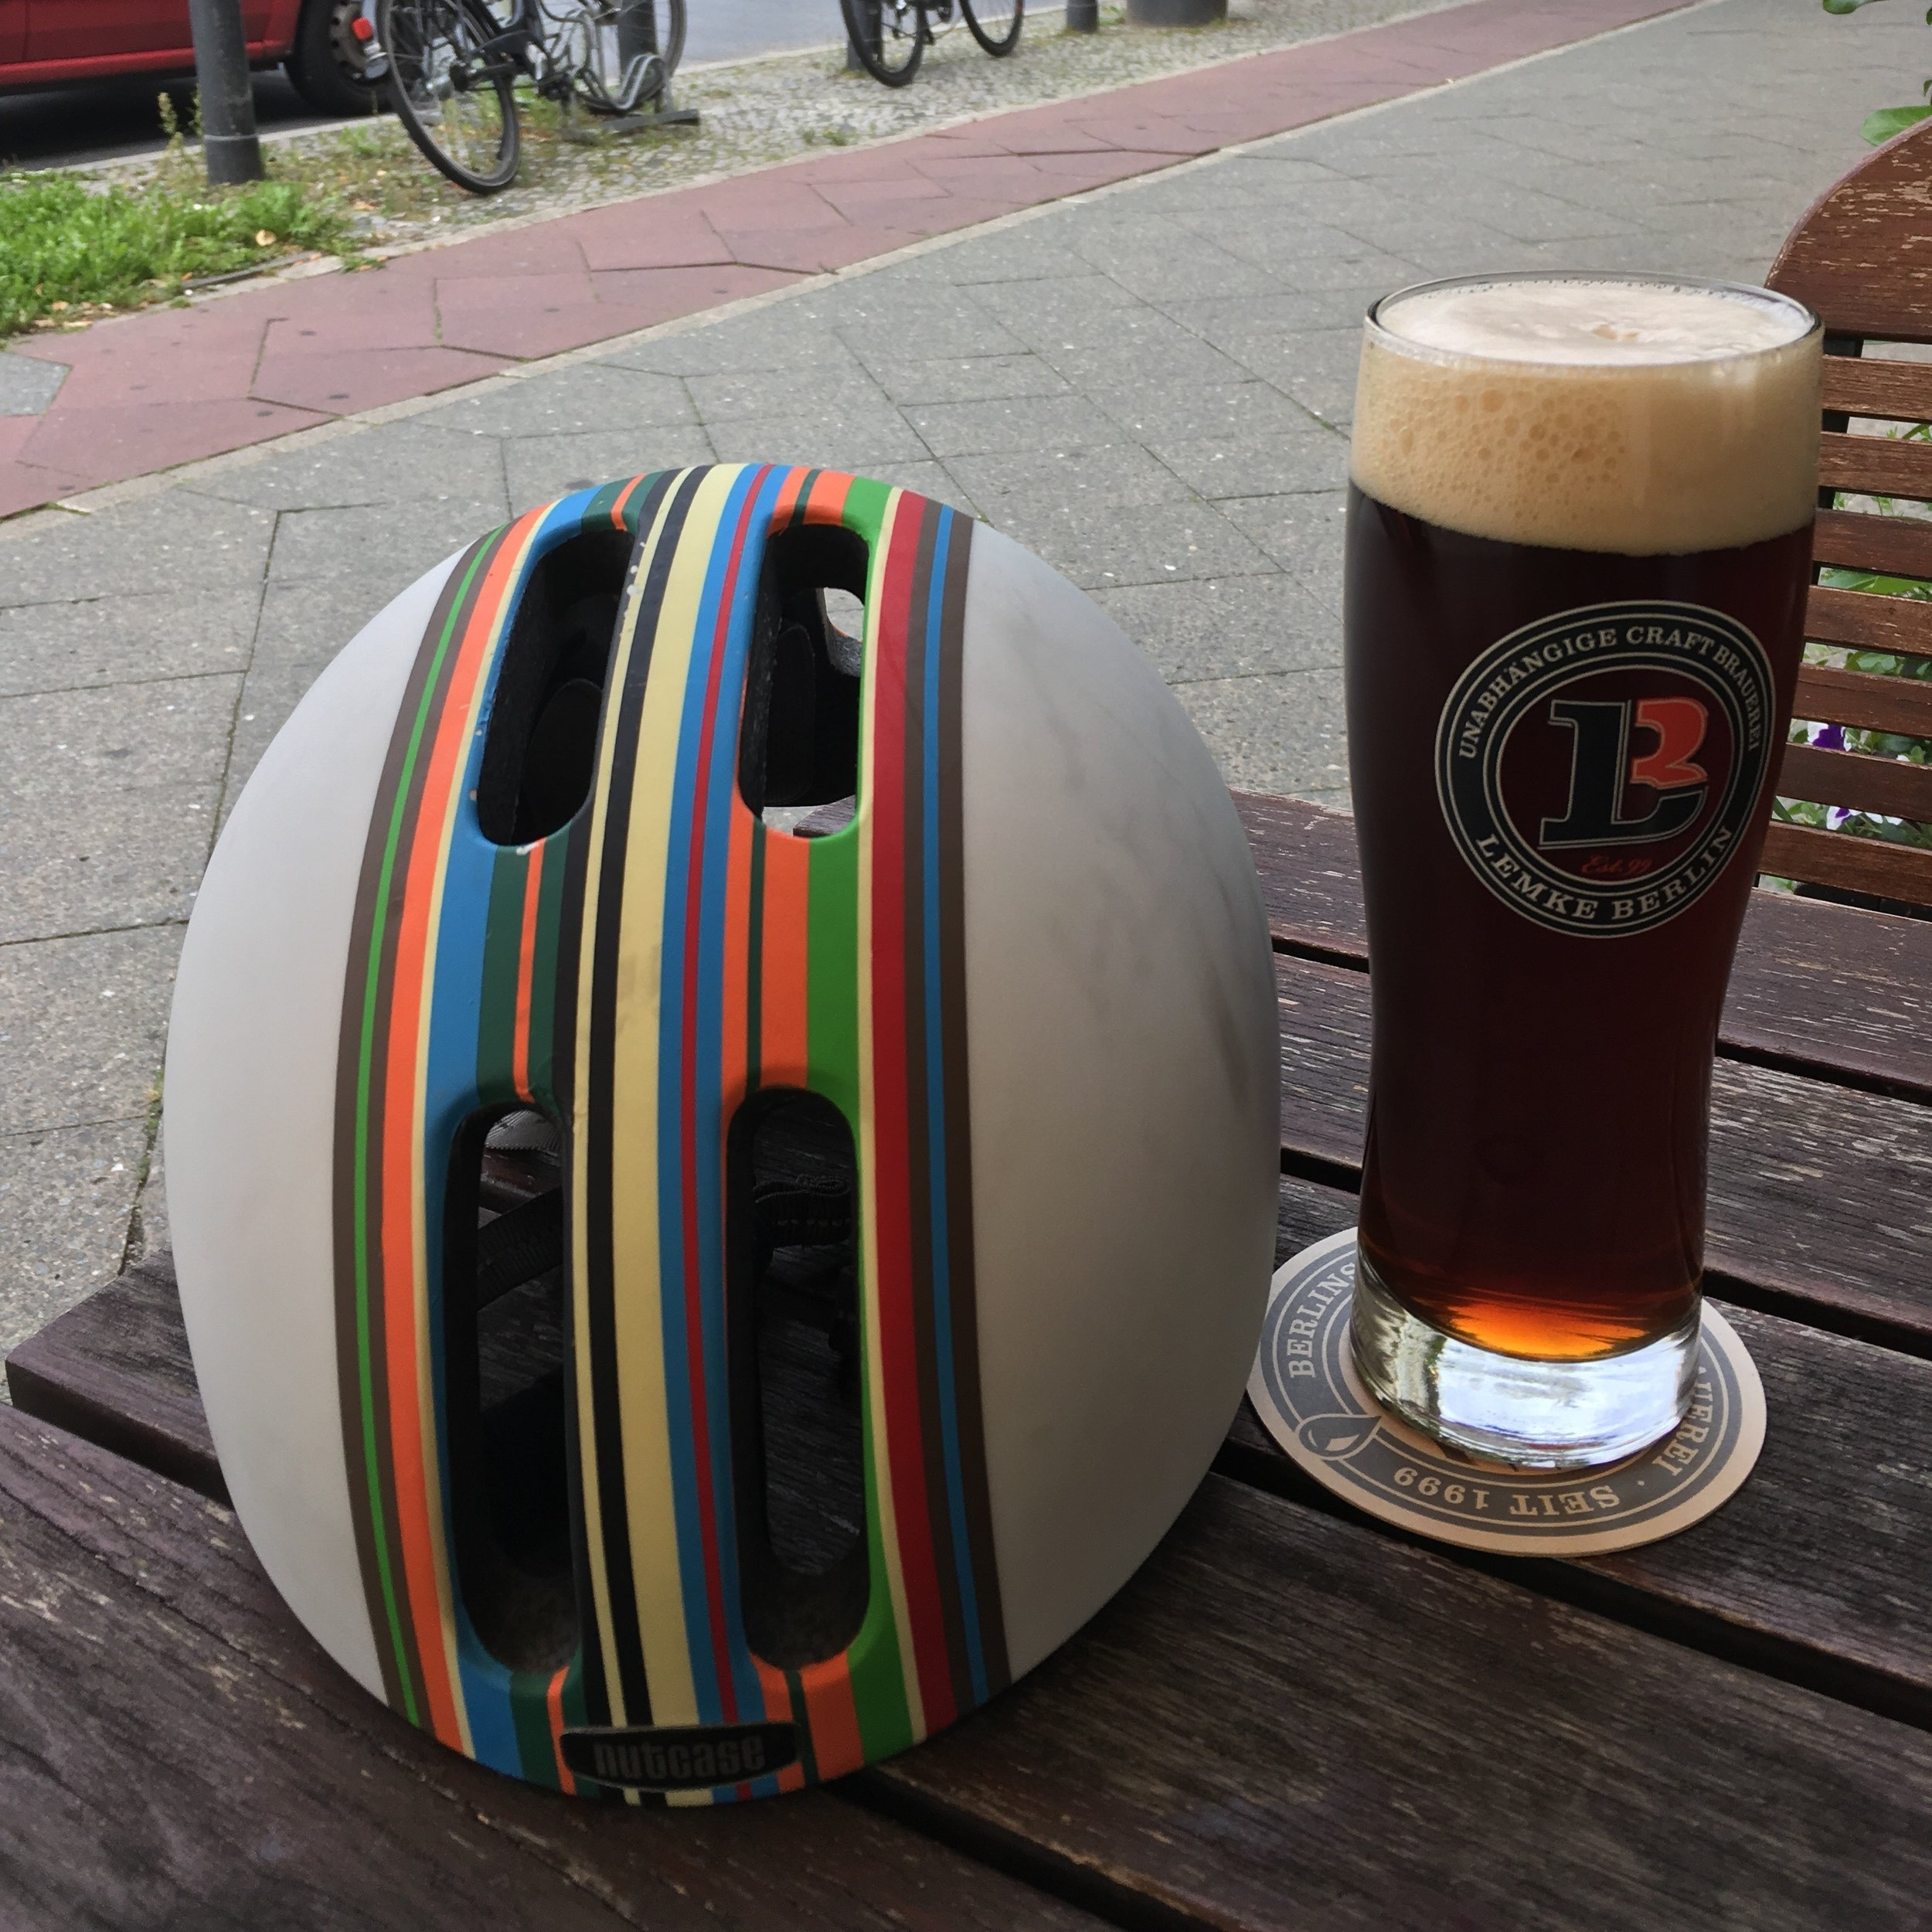 Brauhaus lemke beer and bike.jpeg